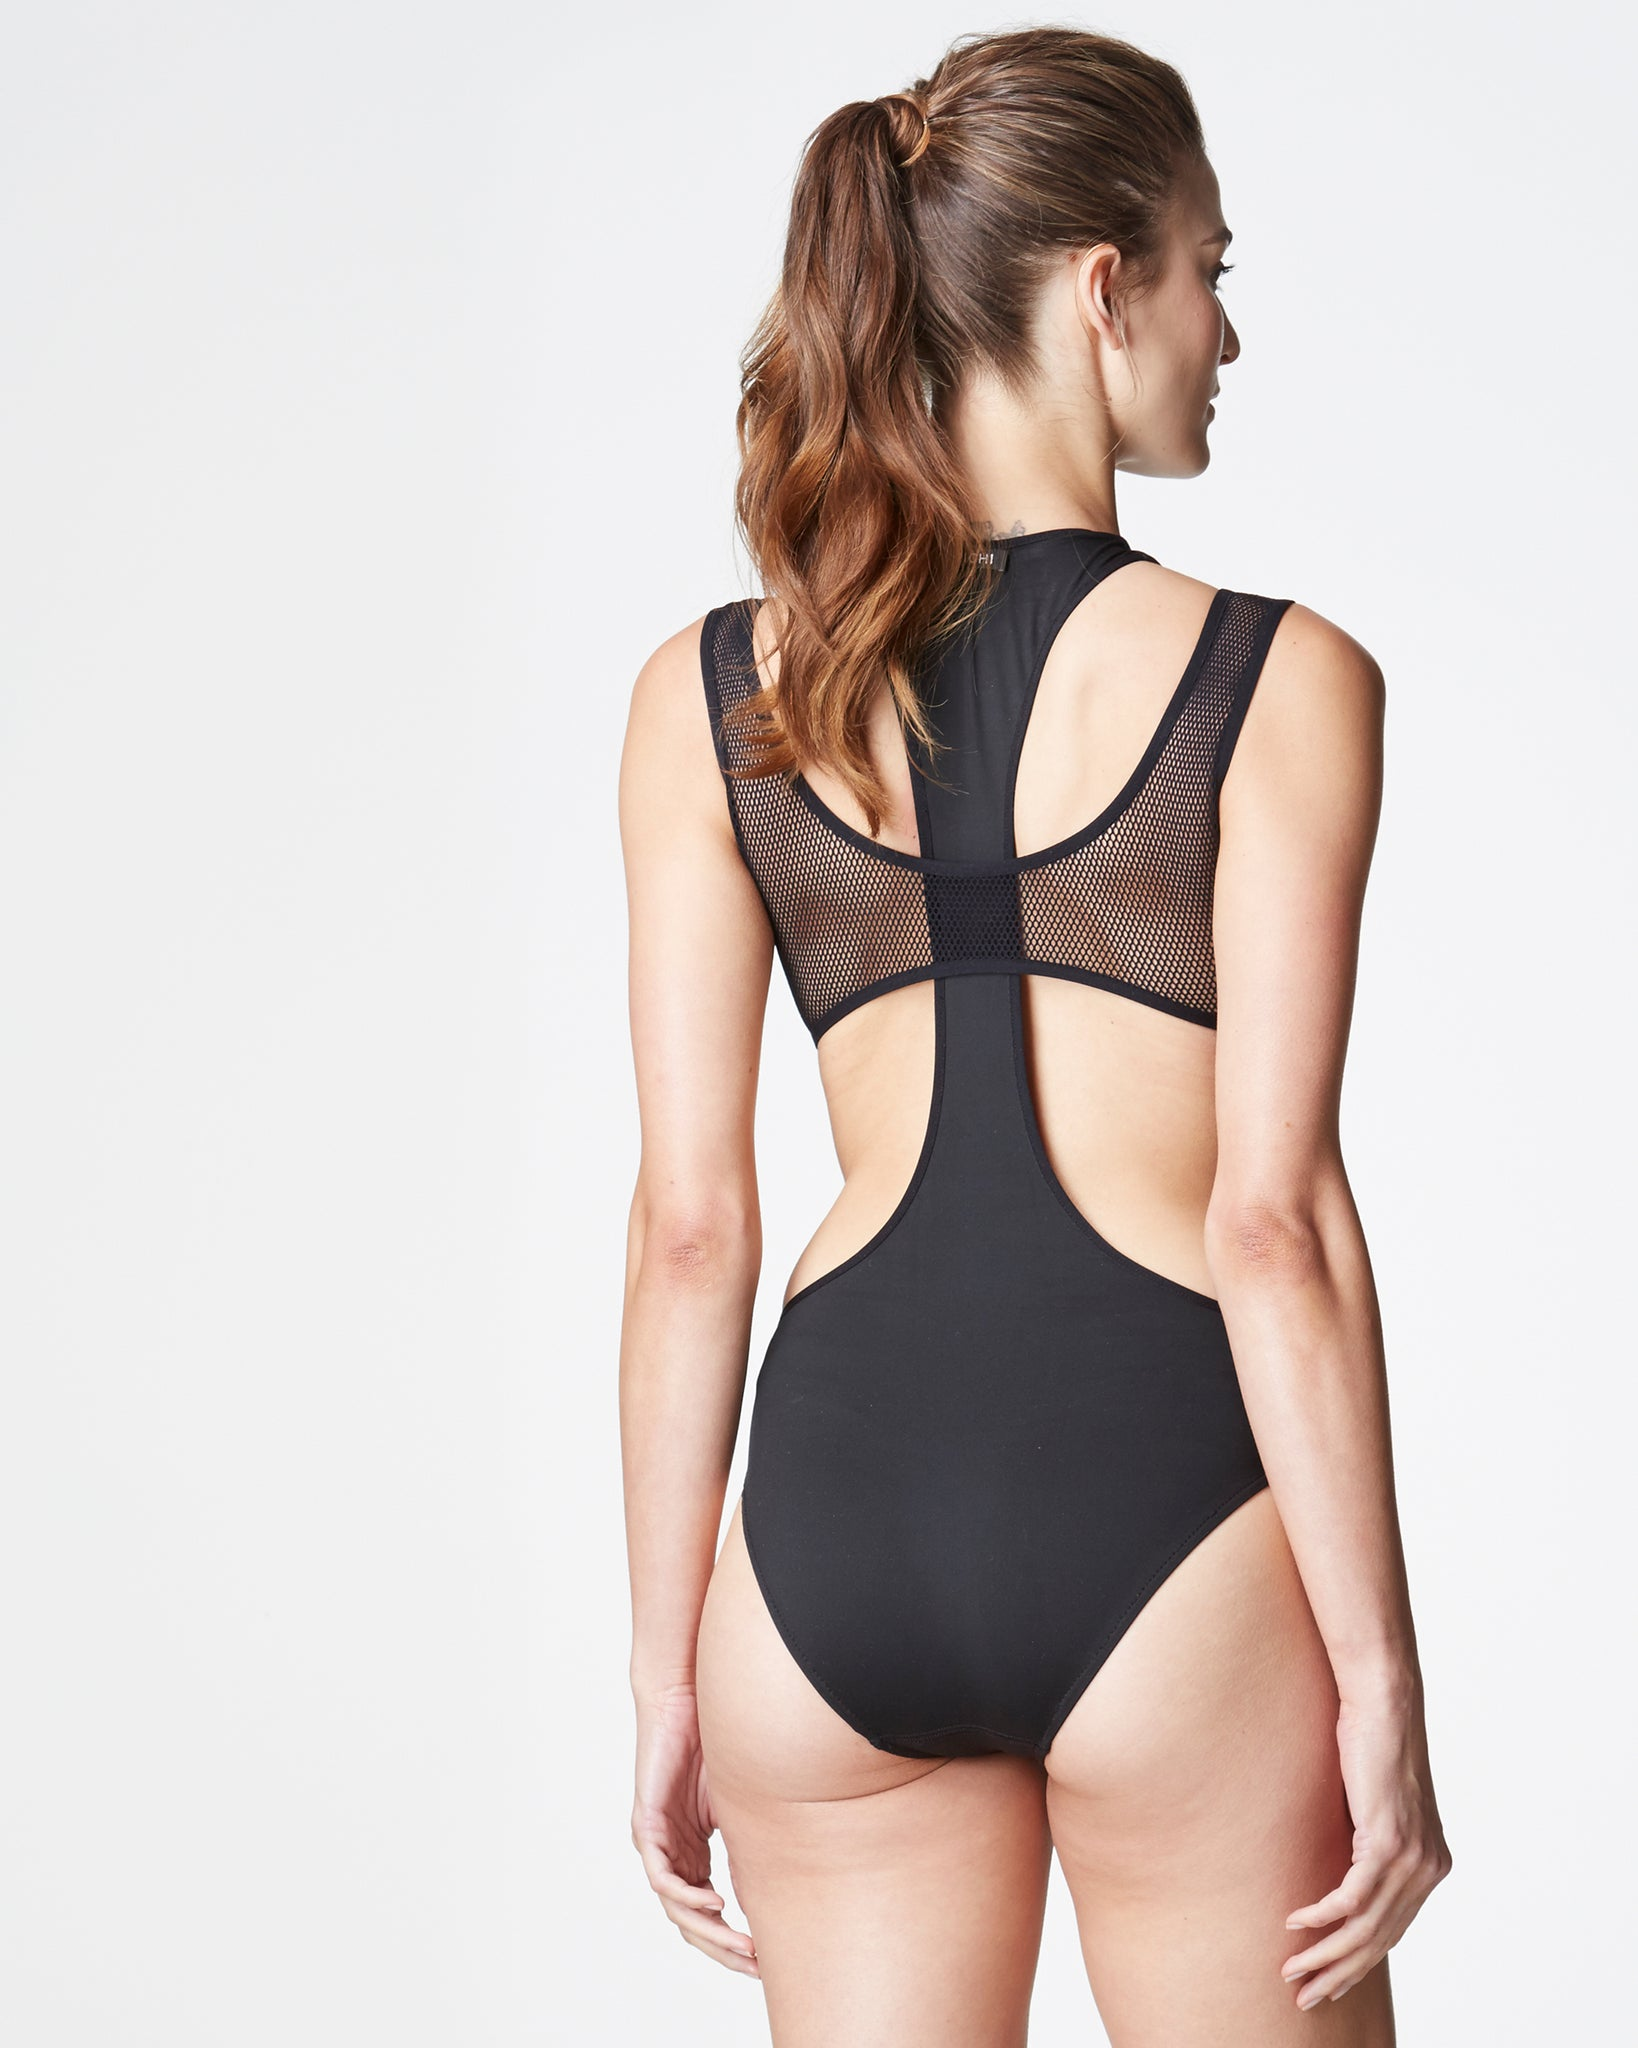 Medusa Bathing Suit - Black